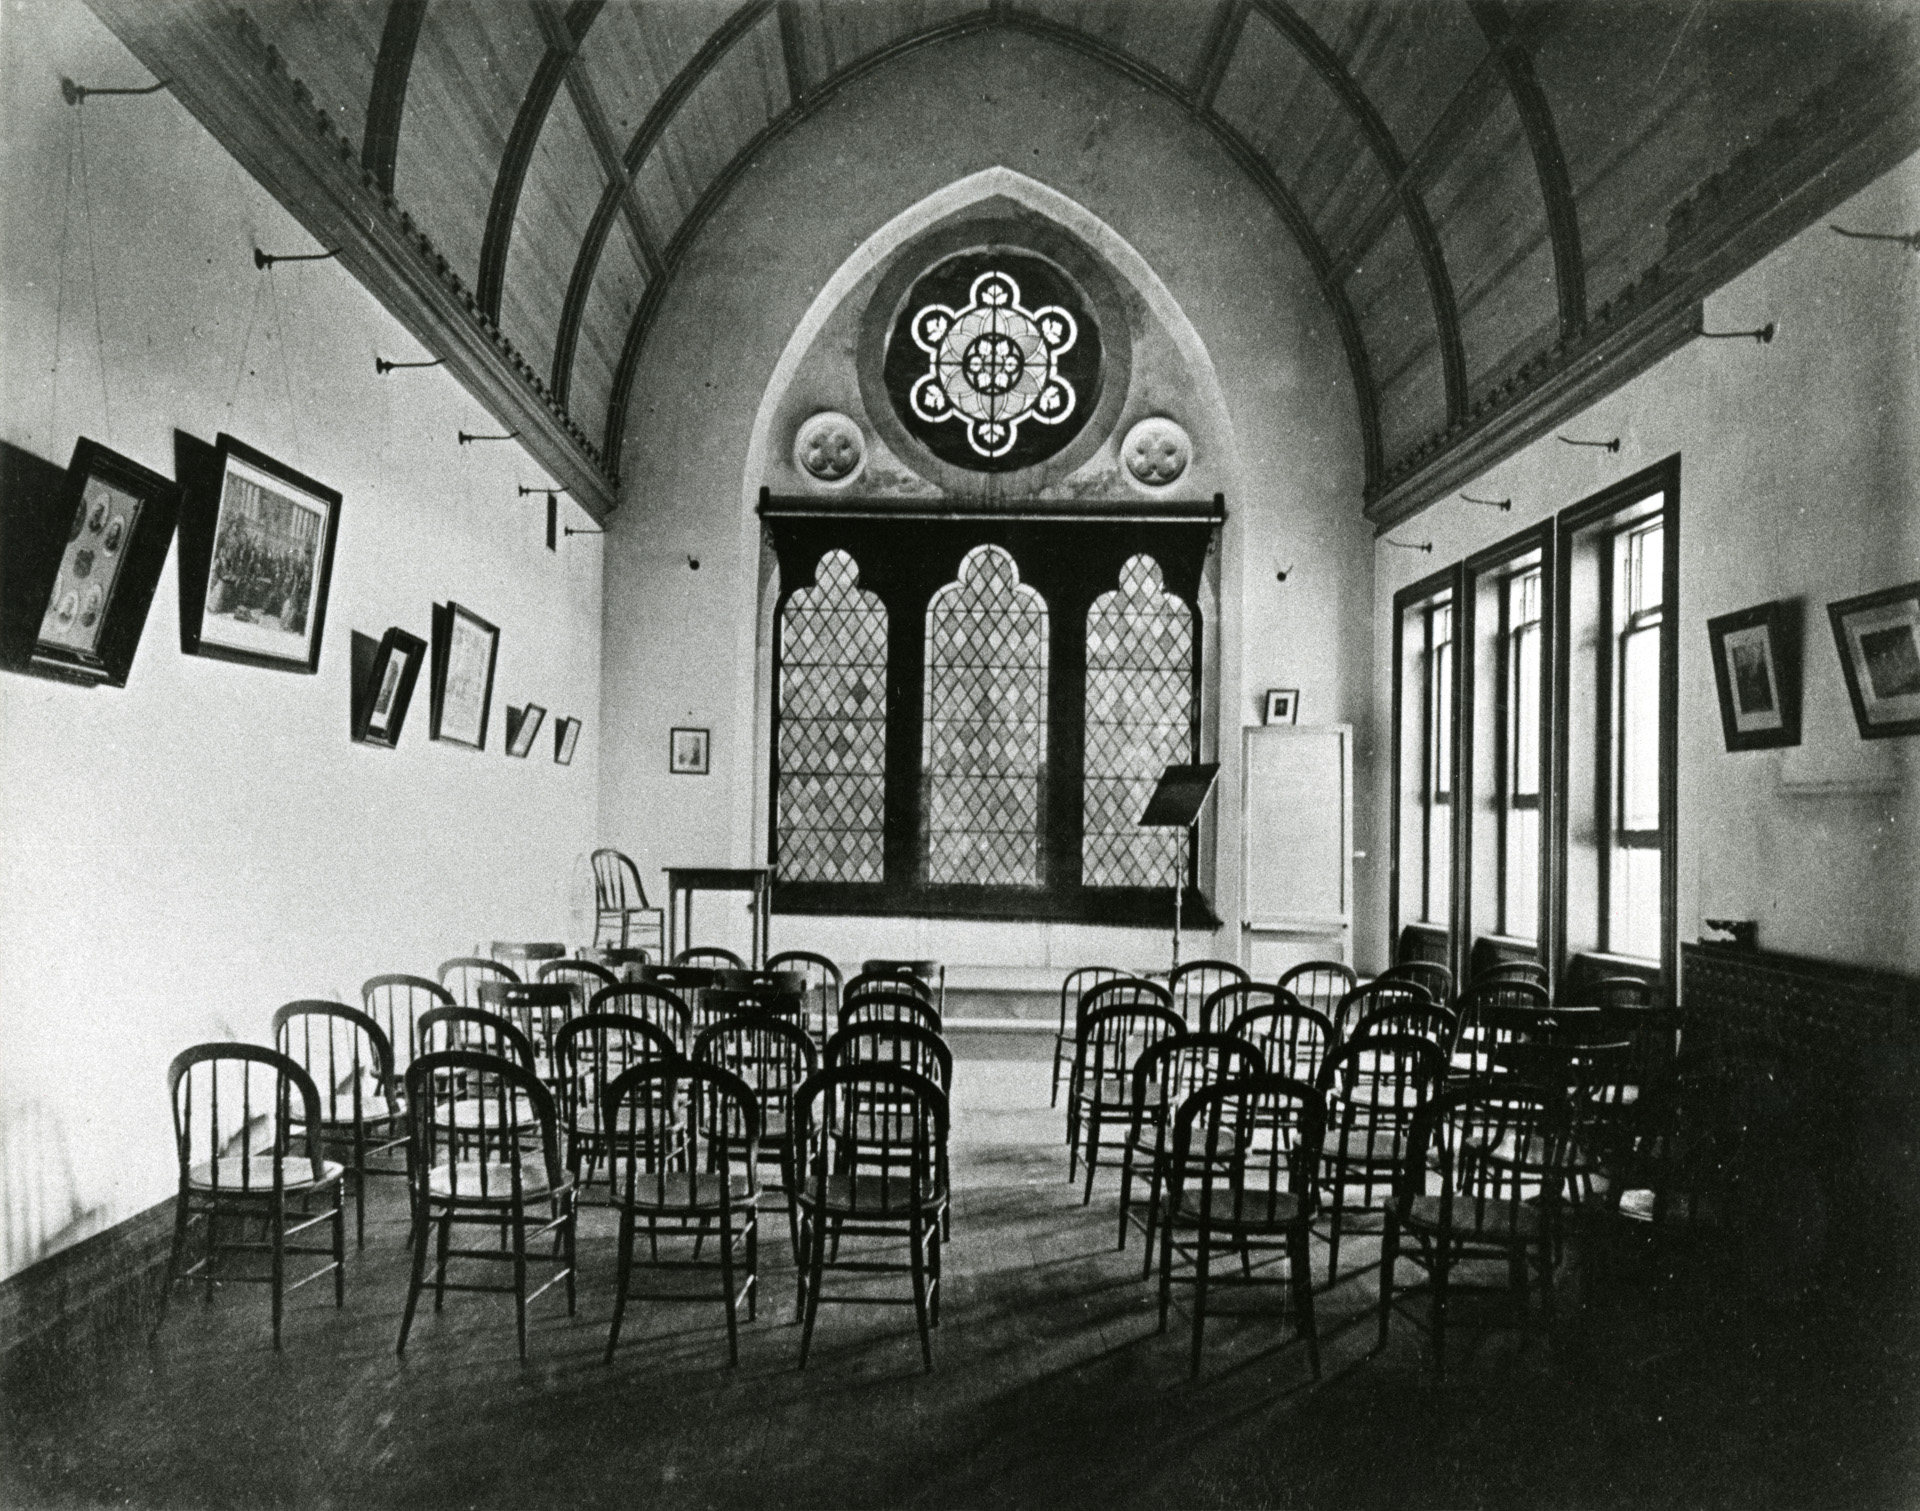 Blk/white photo of an empty Lyceum with chairs. There were frames (of photos, etc.) on the wall. Stained glass in the background.